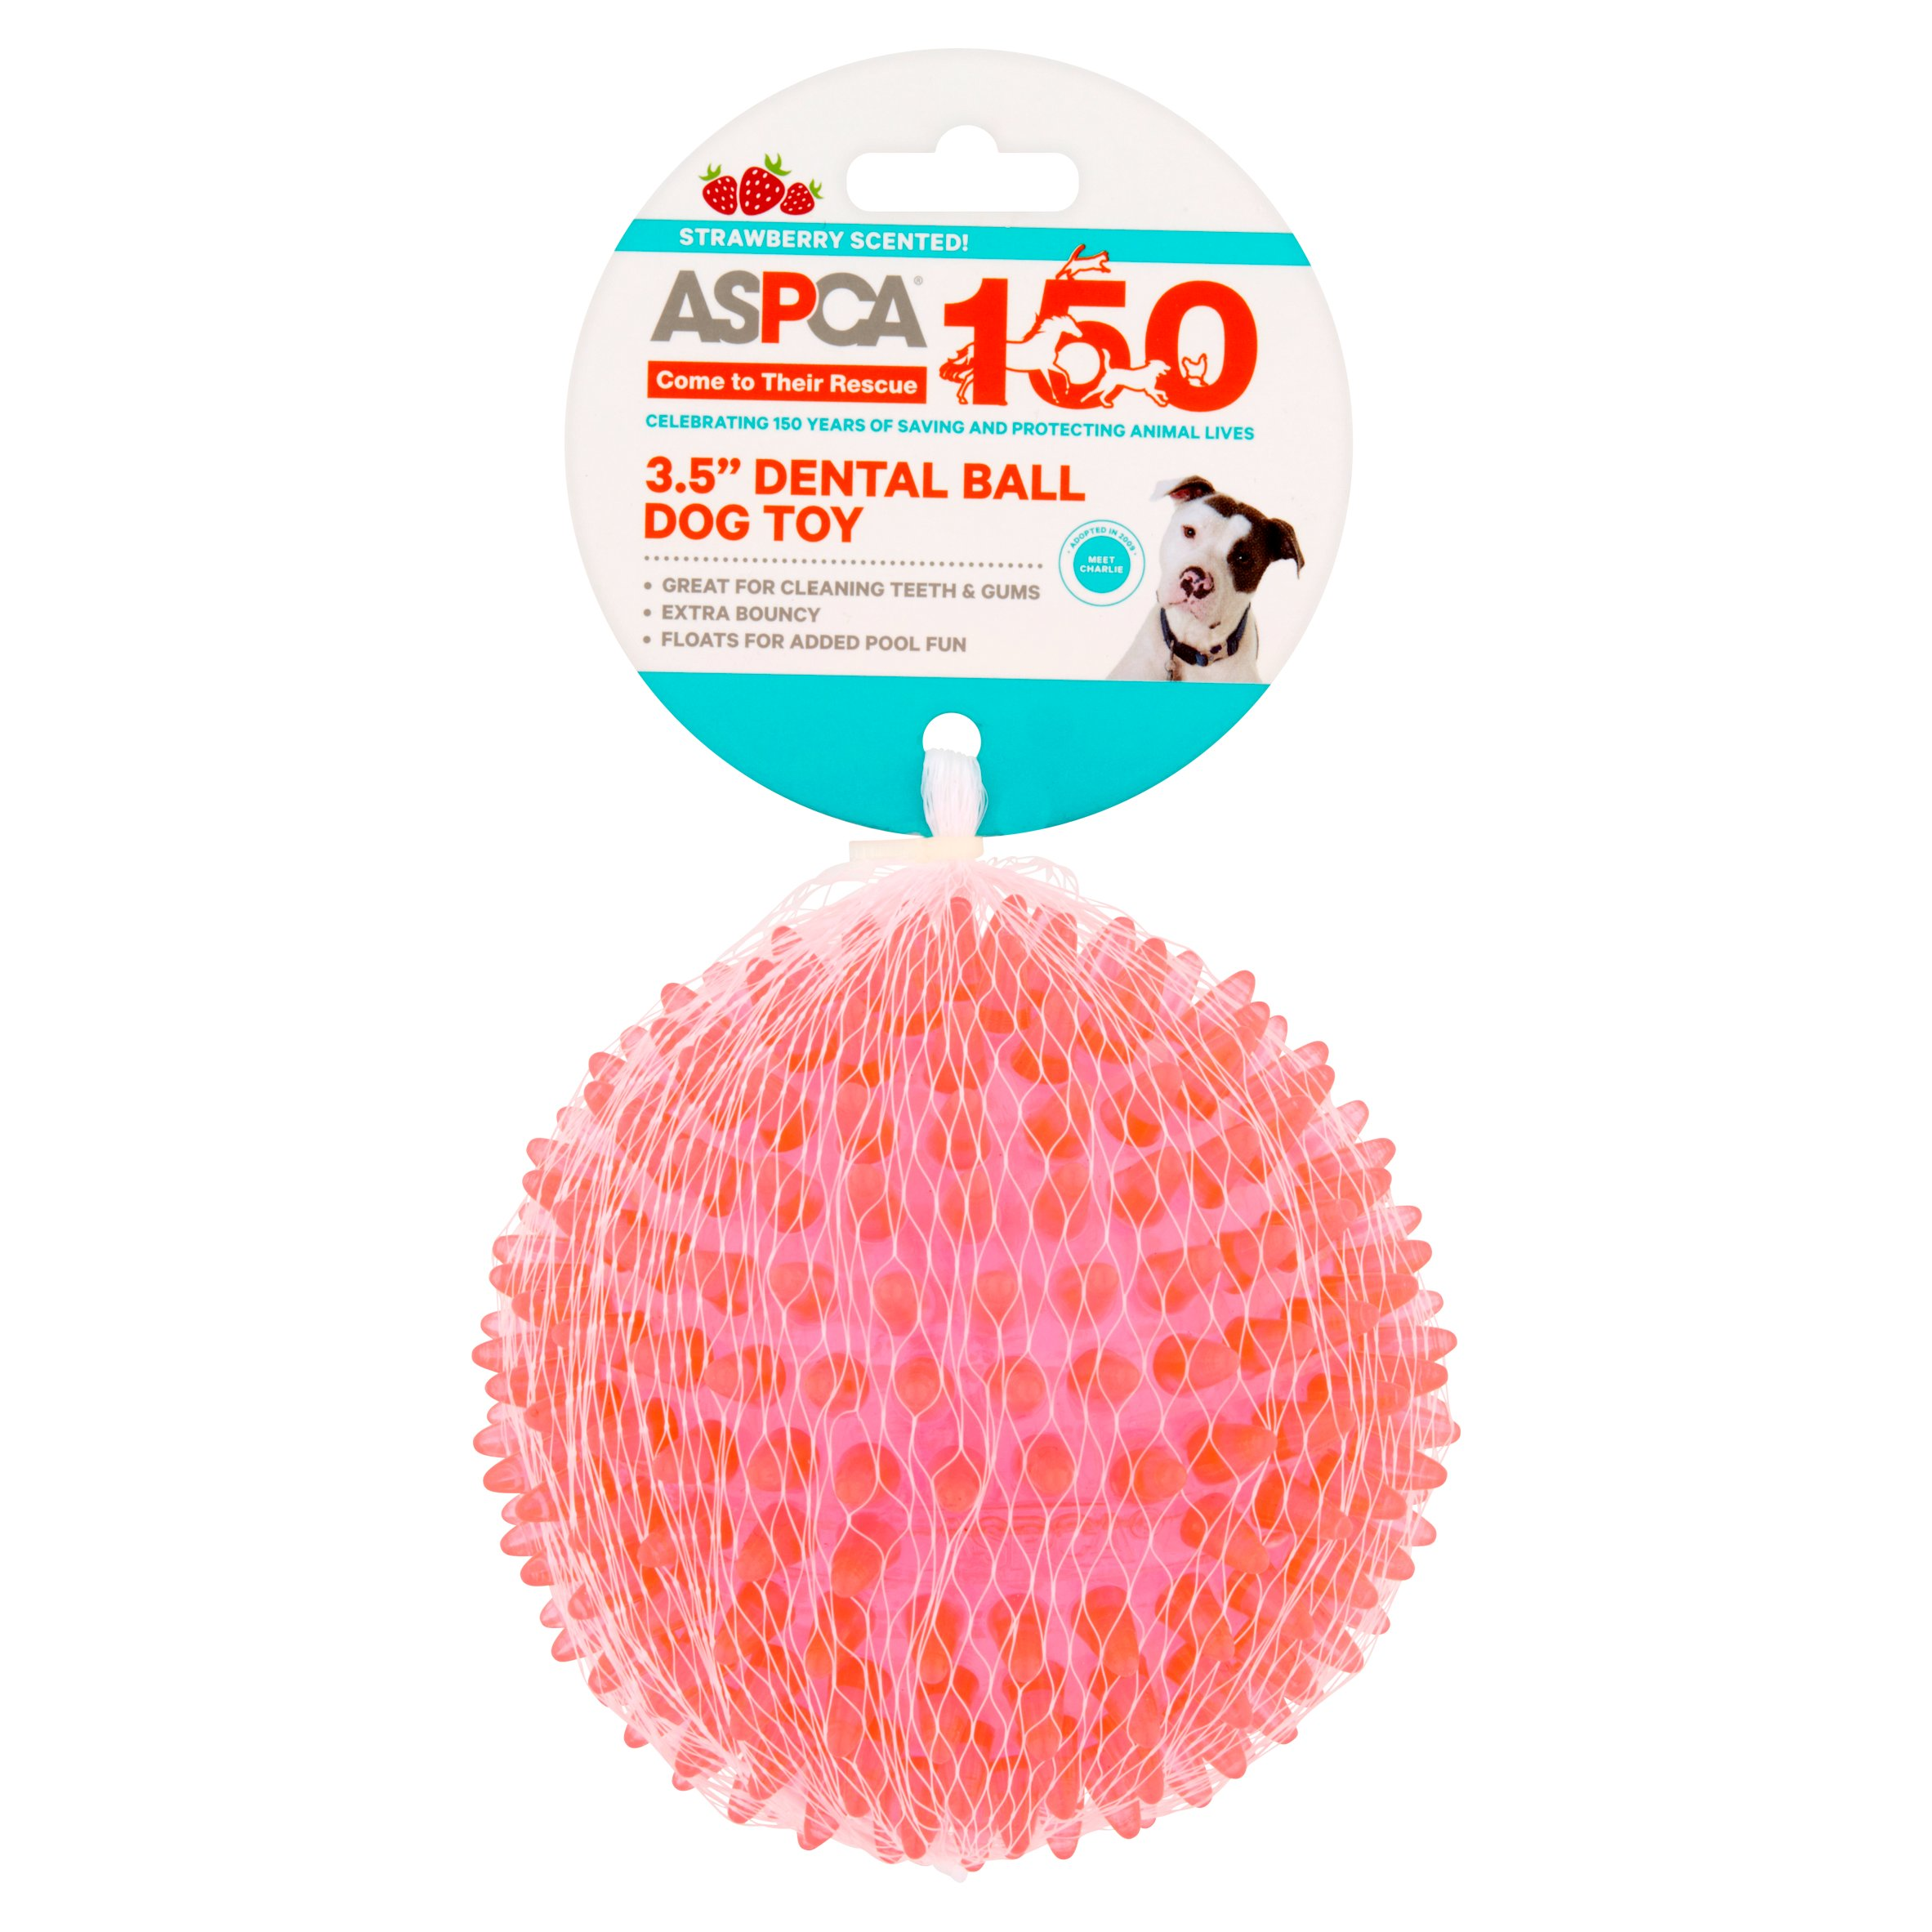 "ASPCA 3.5"" Dental Ball Dog Toy by European Home Designs, LLC"